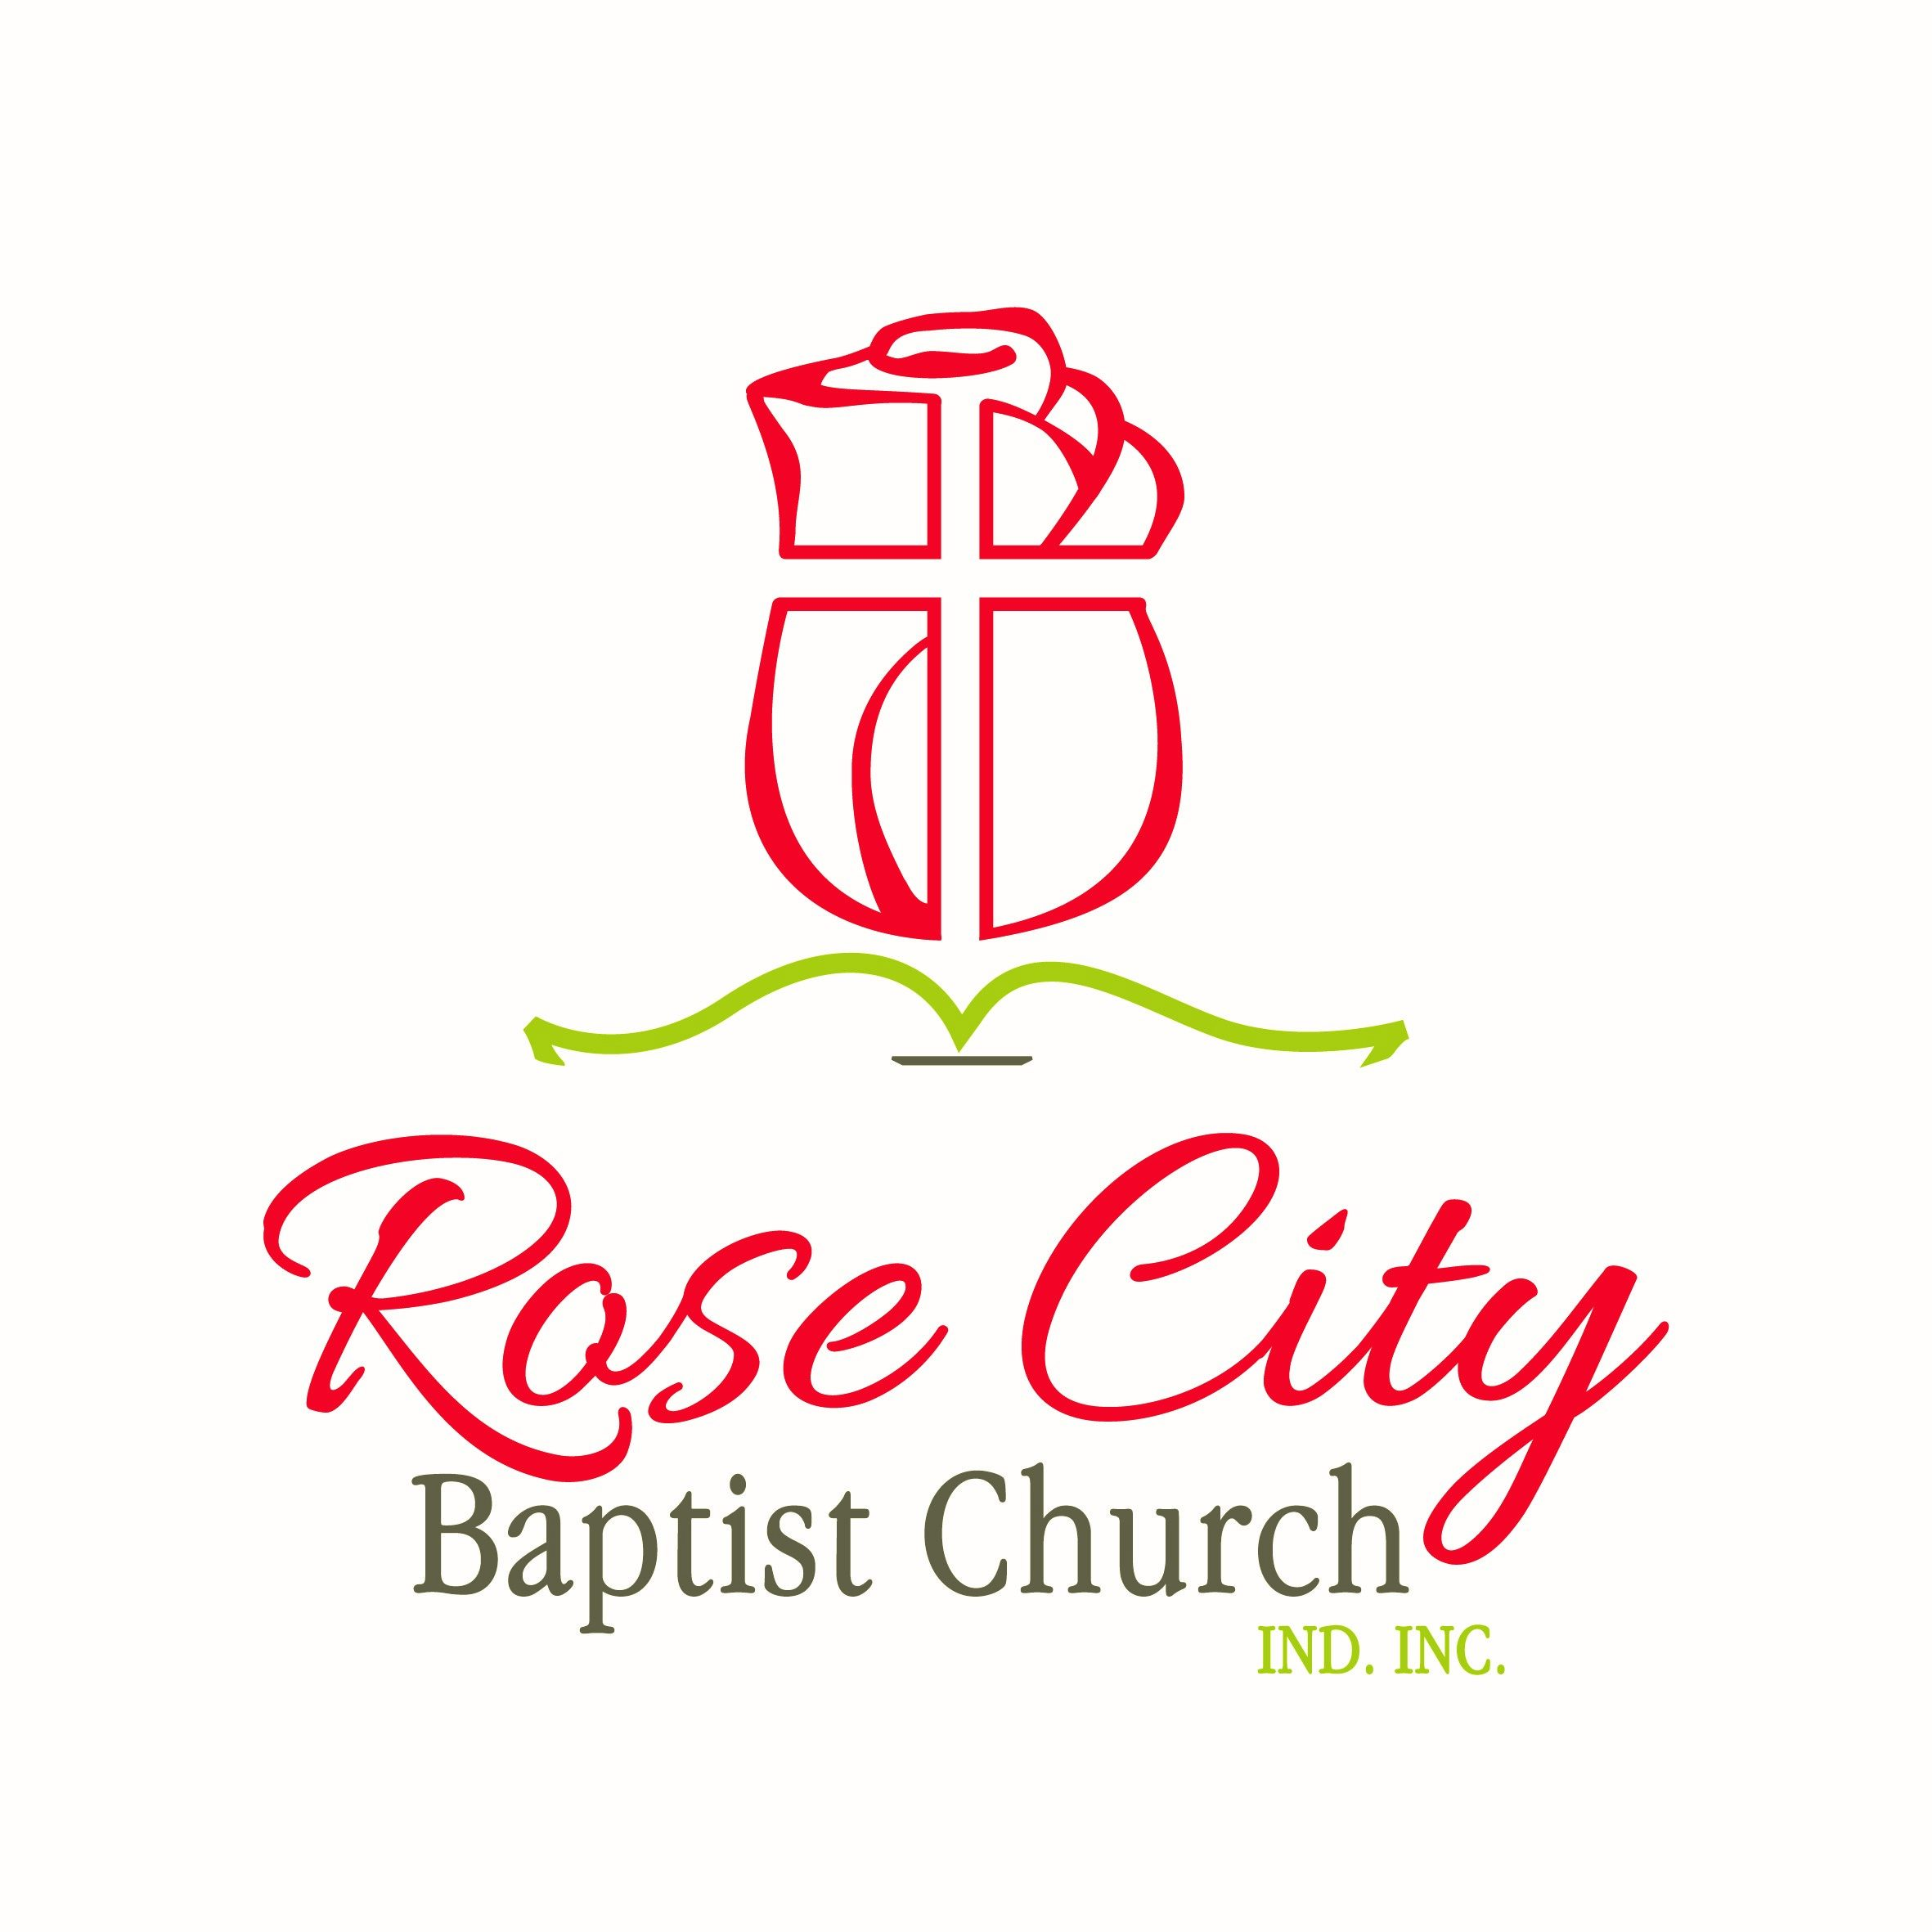 Rose City Baptist Church